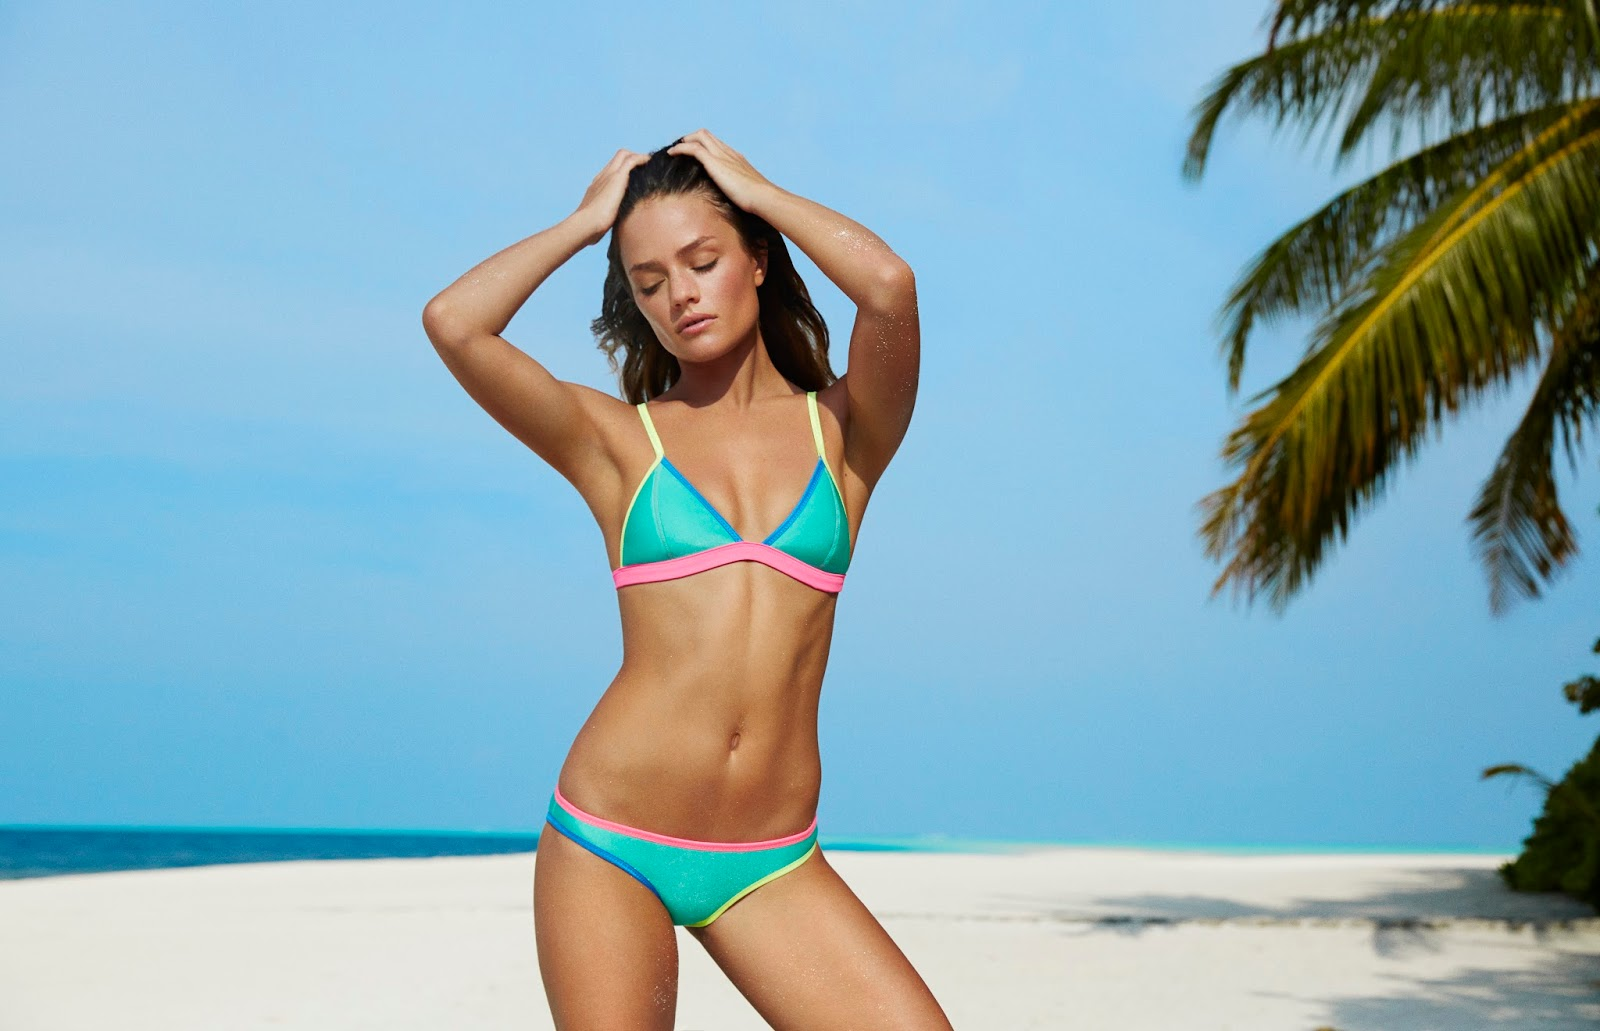 Discover a range of mix and match swimwear with ASOS. From bikini tops and bottoms to tankinis, from different styles and colours. Shop with ASOS today.